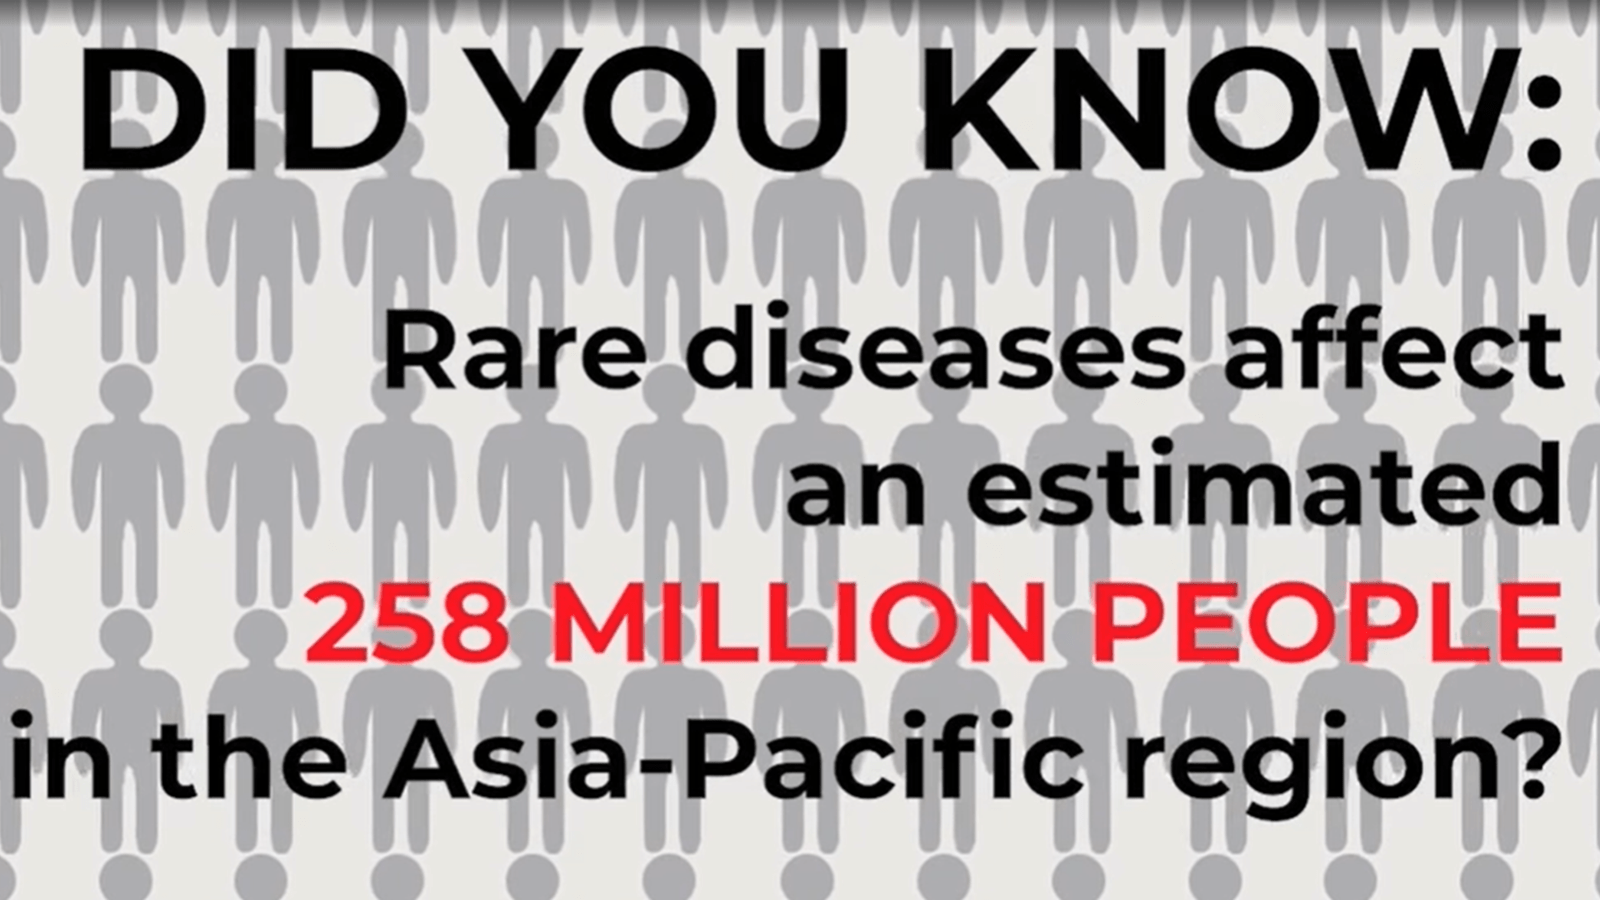 Did you know rare diseases affect 258 million people in Asia PAC?